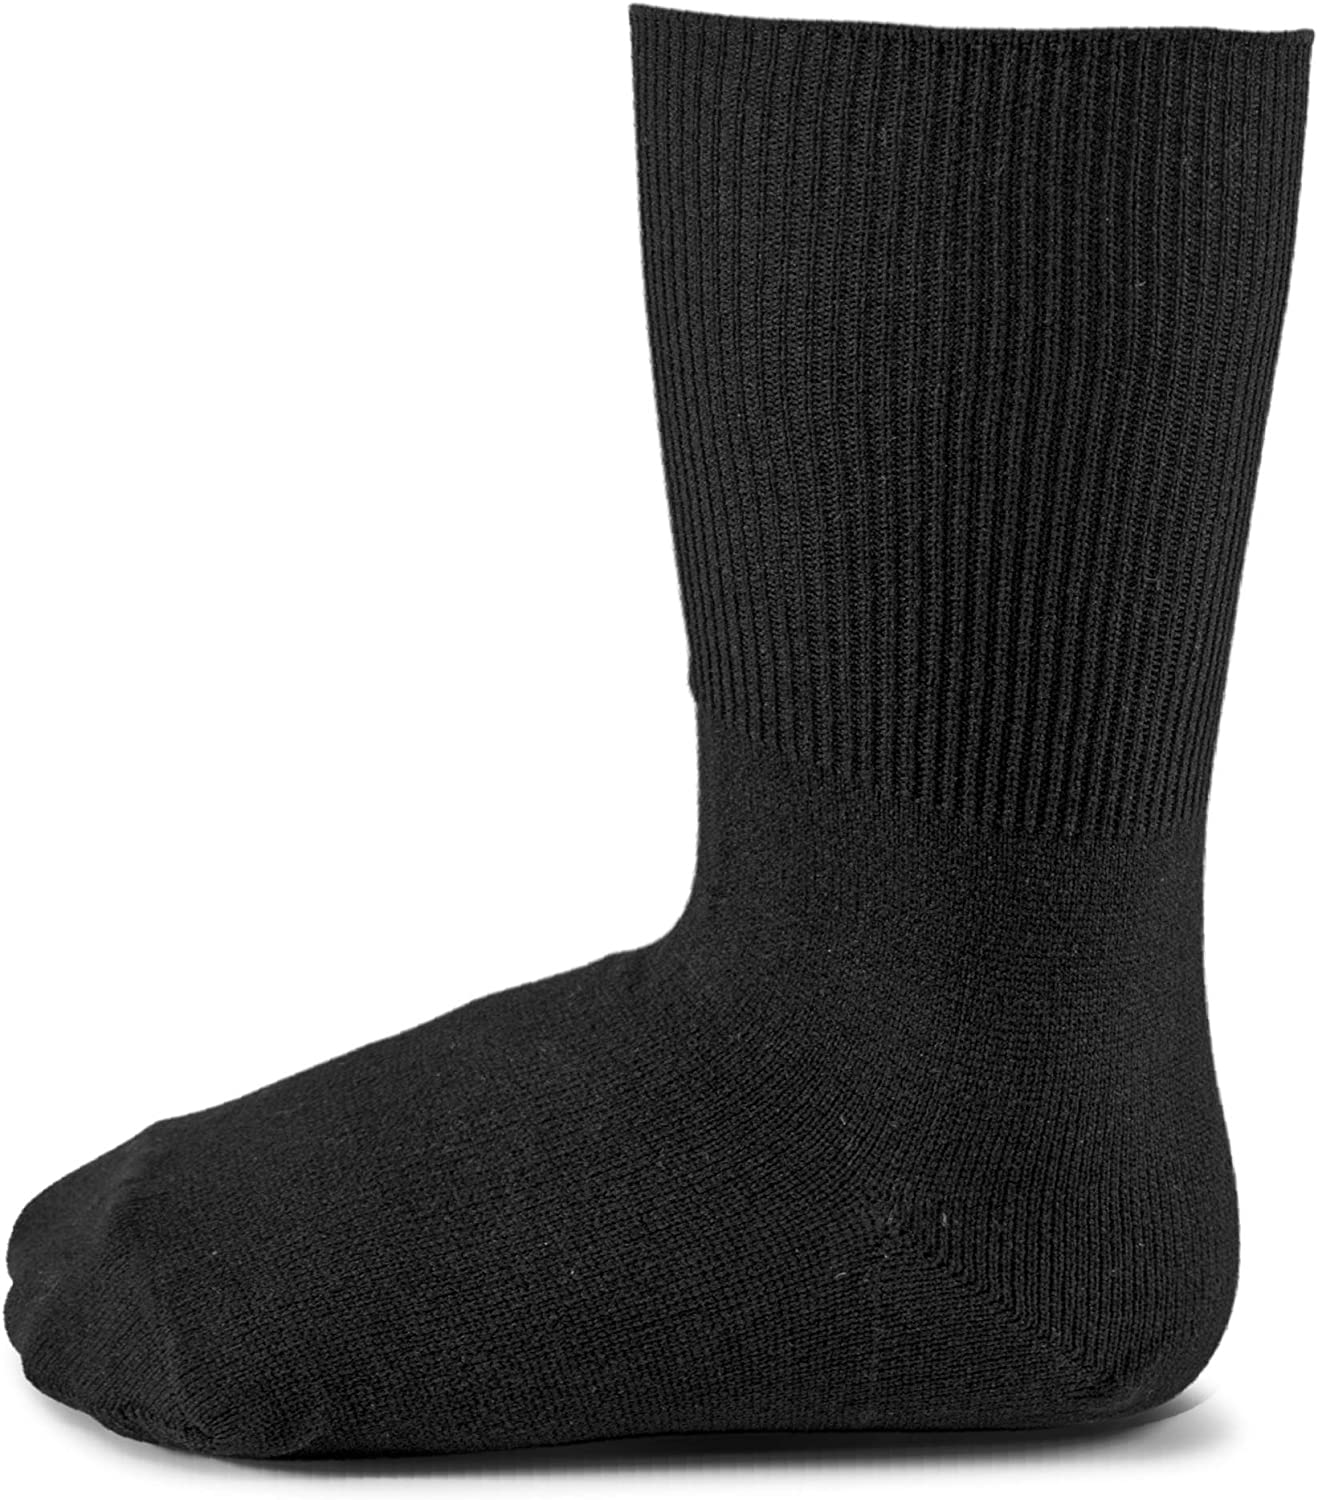 Large special price !! Finally resale start Boy's Cable Crew Sock